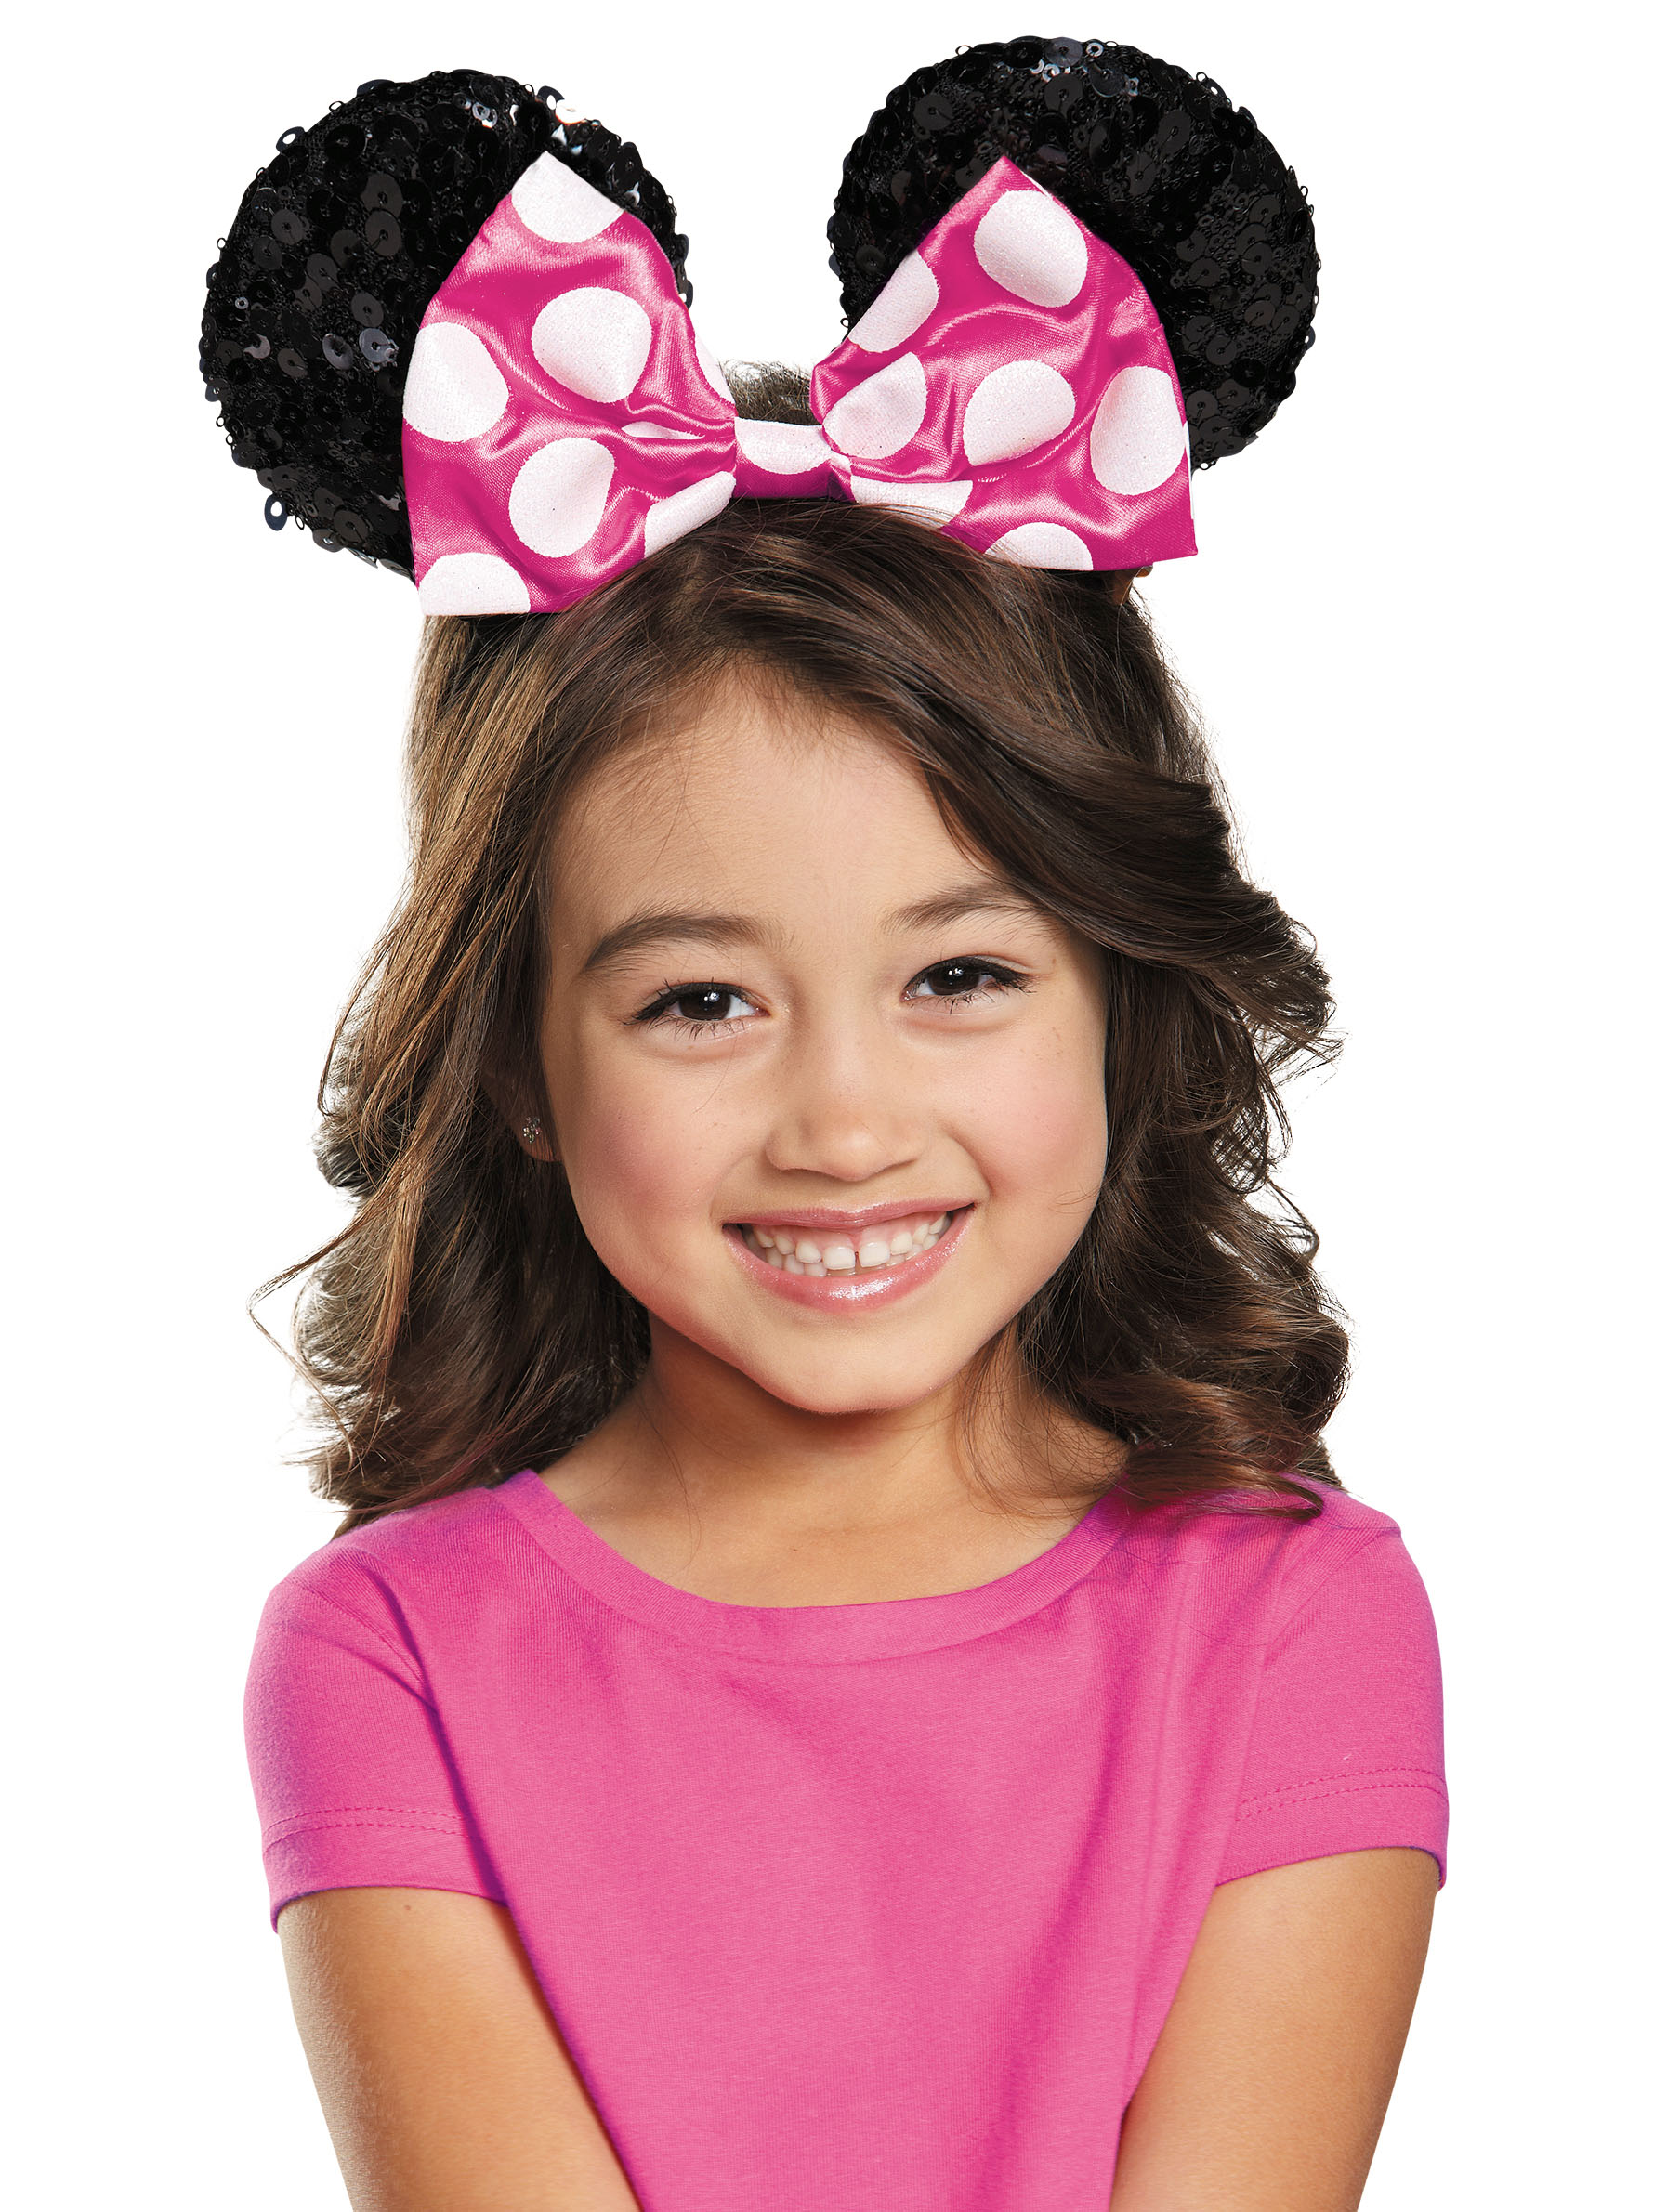 Pink Minnie Mouse Child Sequin Ears Halloween Costume Accessory  sc 1 st  Walmart & Pink Minnie Mouse Child Sequin Ears Halloween Costume Accessory ...